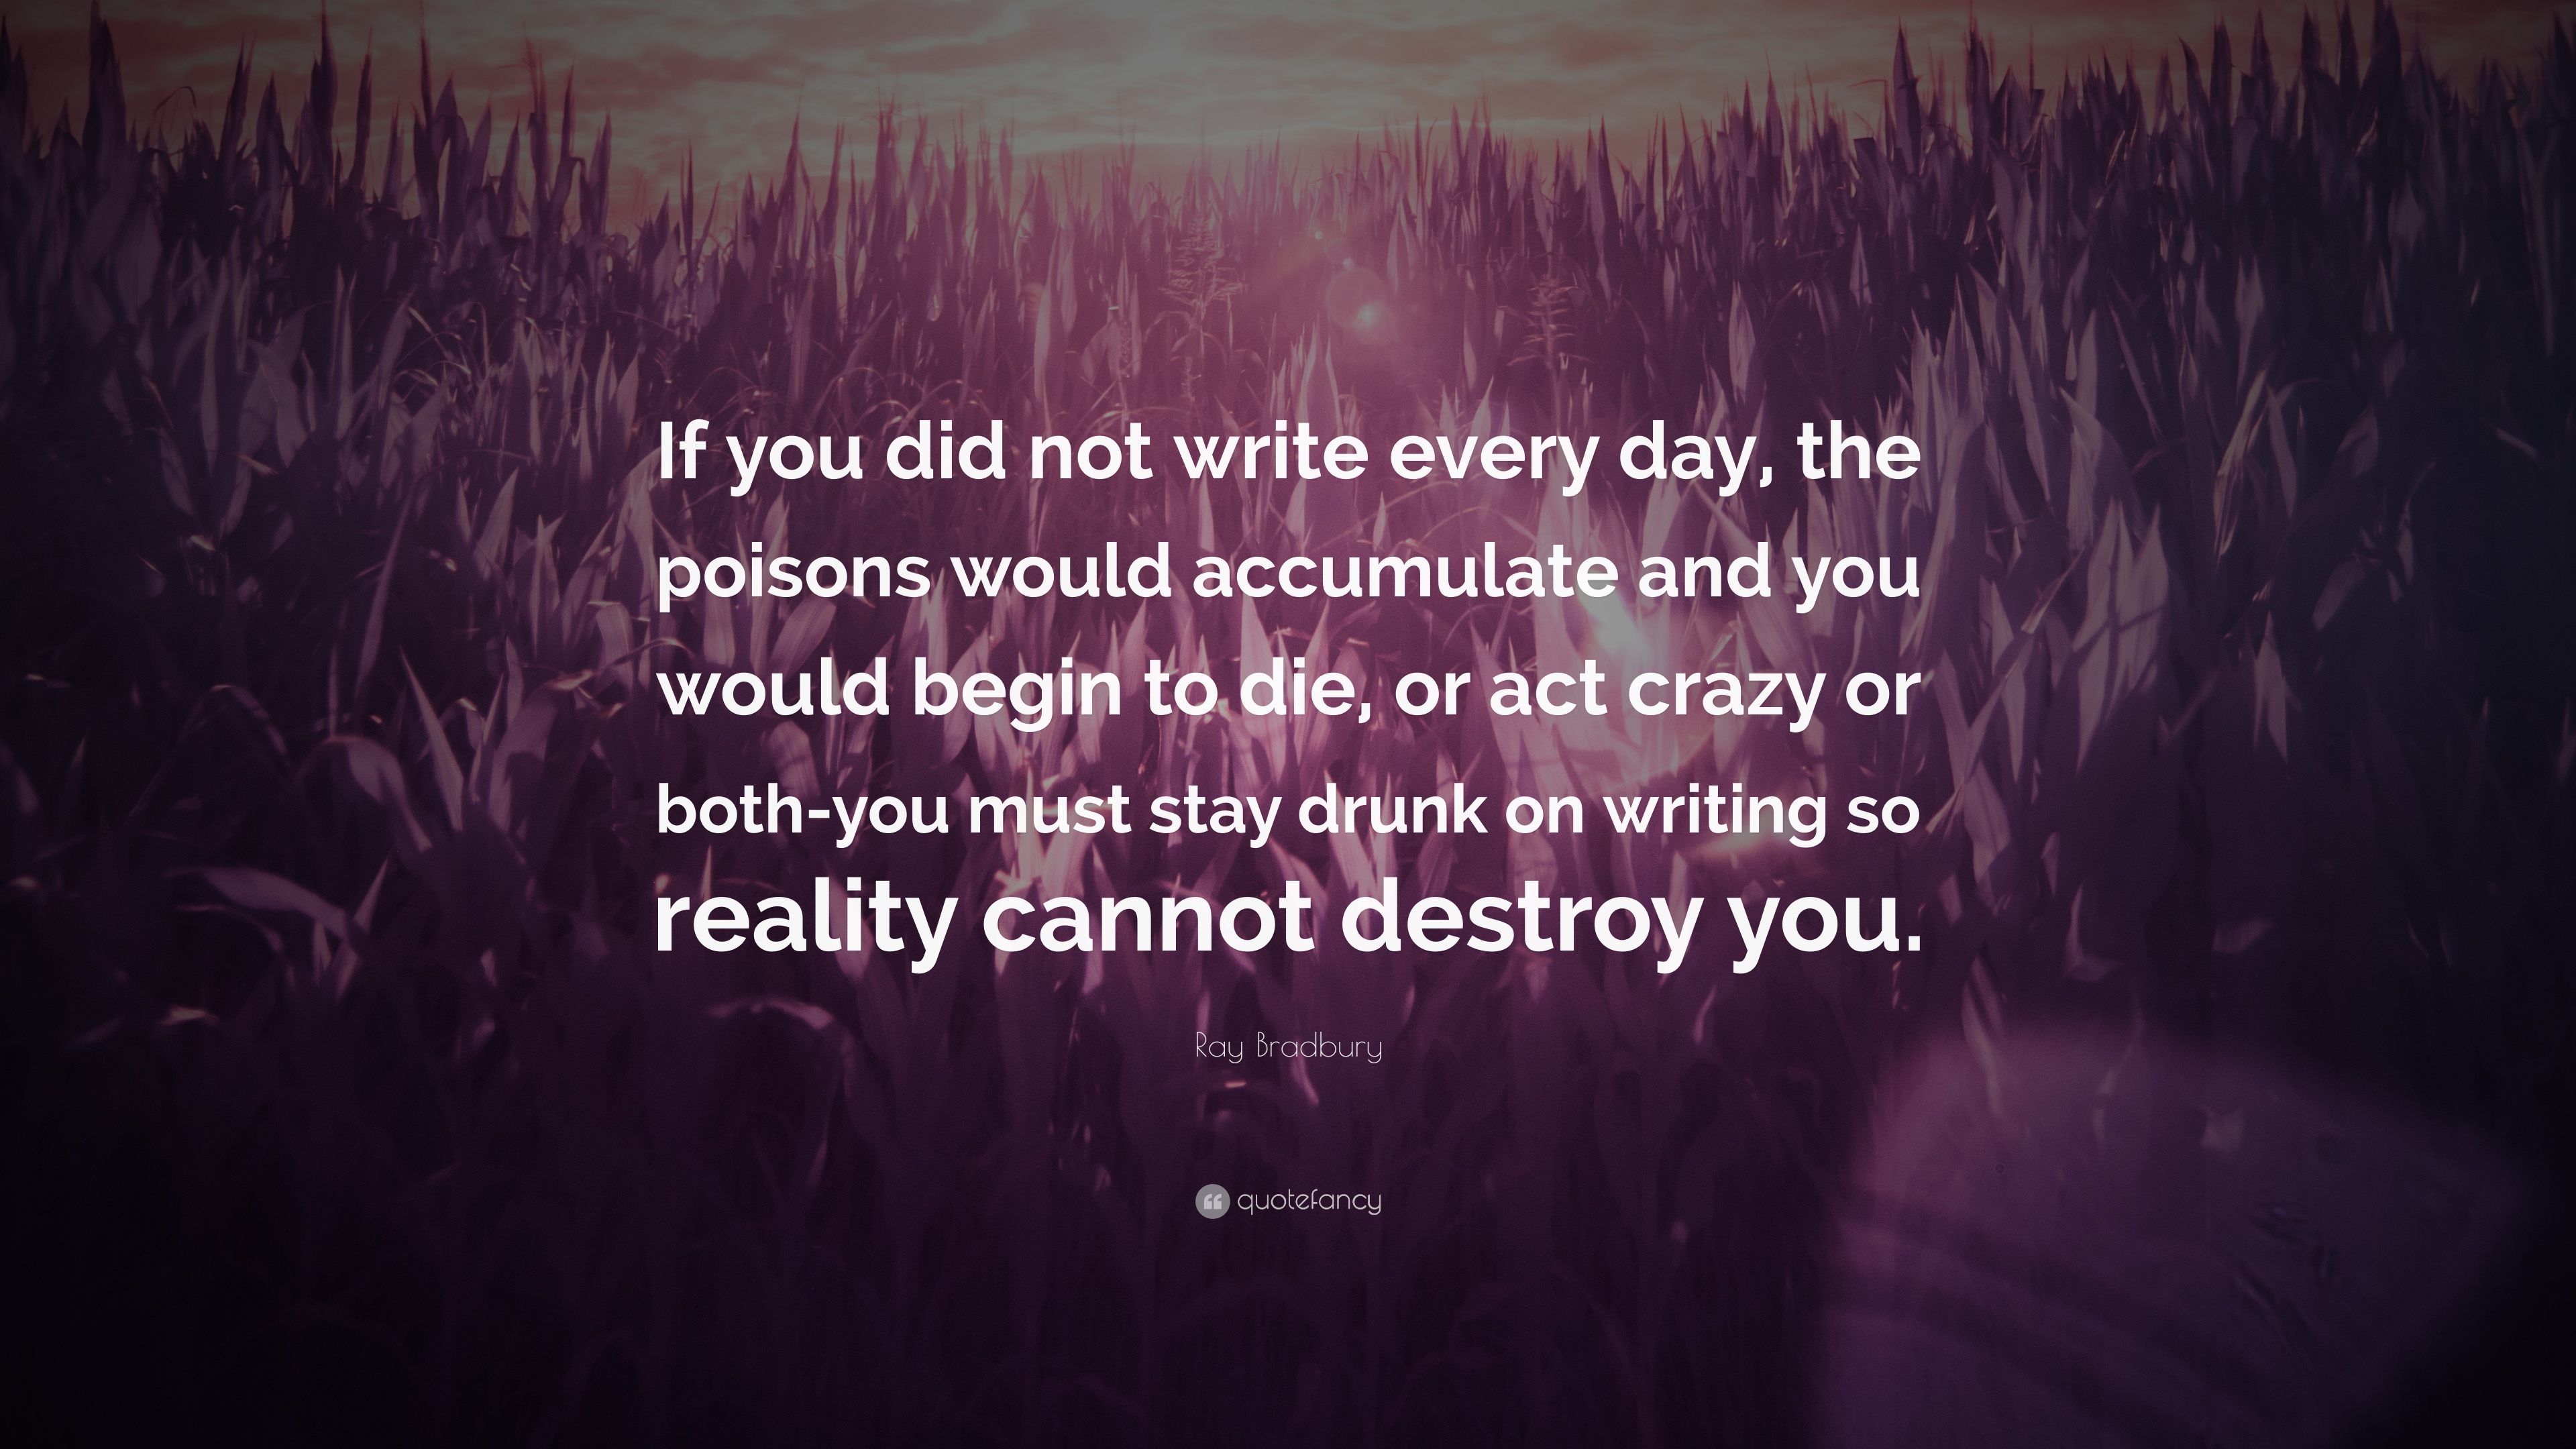 """Ray Bradbury Quote """"If you did not write every day the poisons"""